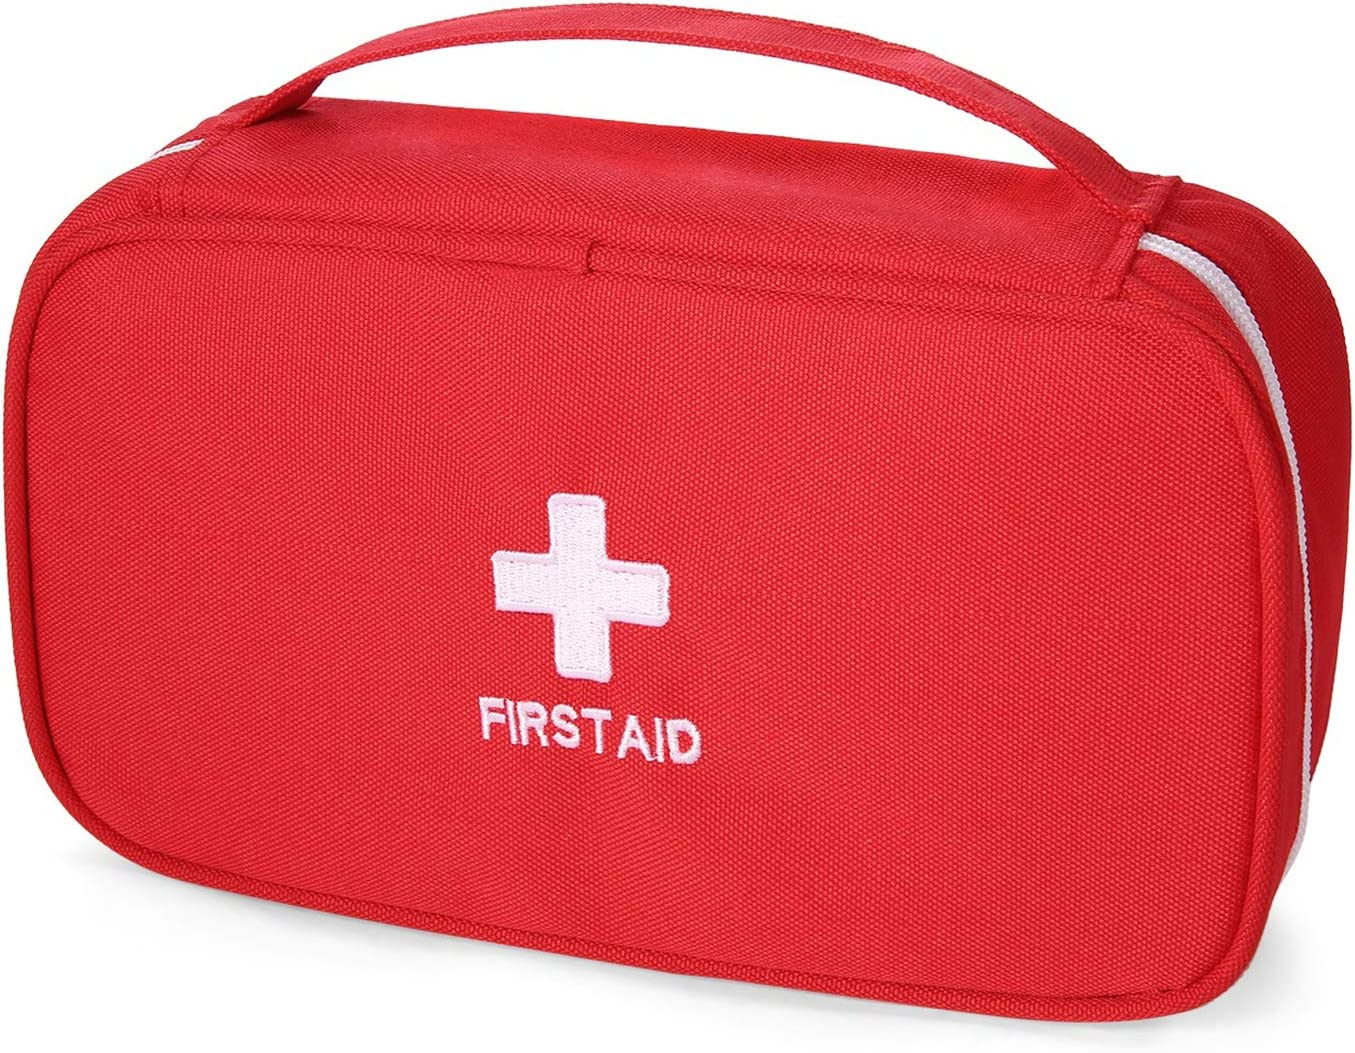 Ellsang First Aid Bag for Home Outdoor Travel Max 57% OFF Hiking Camping Max 87% OFF B